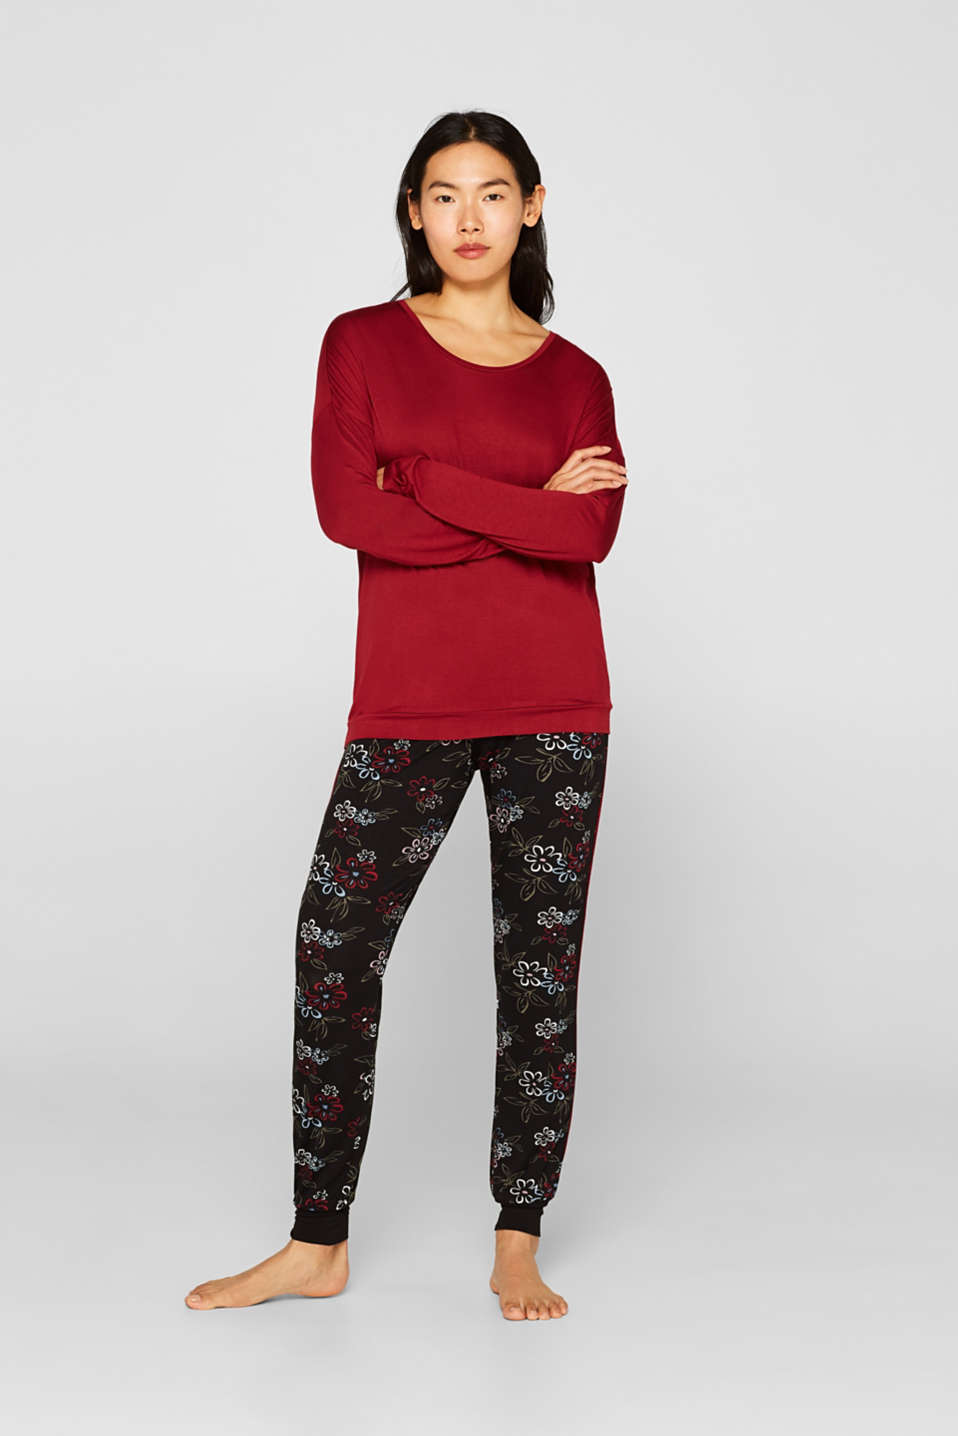 Esprit - Stretch jersey pyjamas with print bottoms